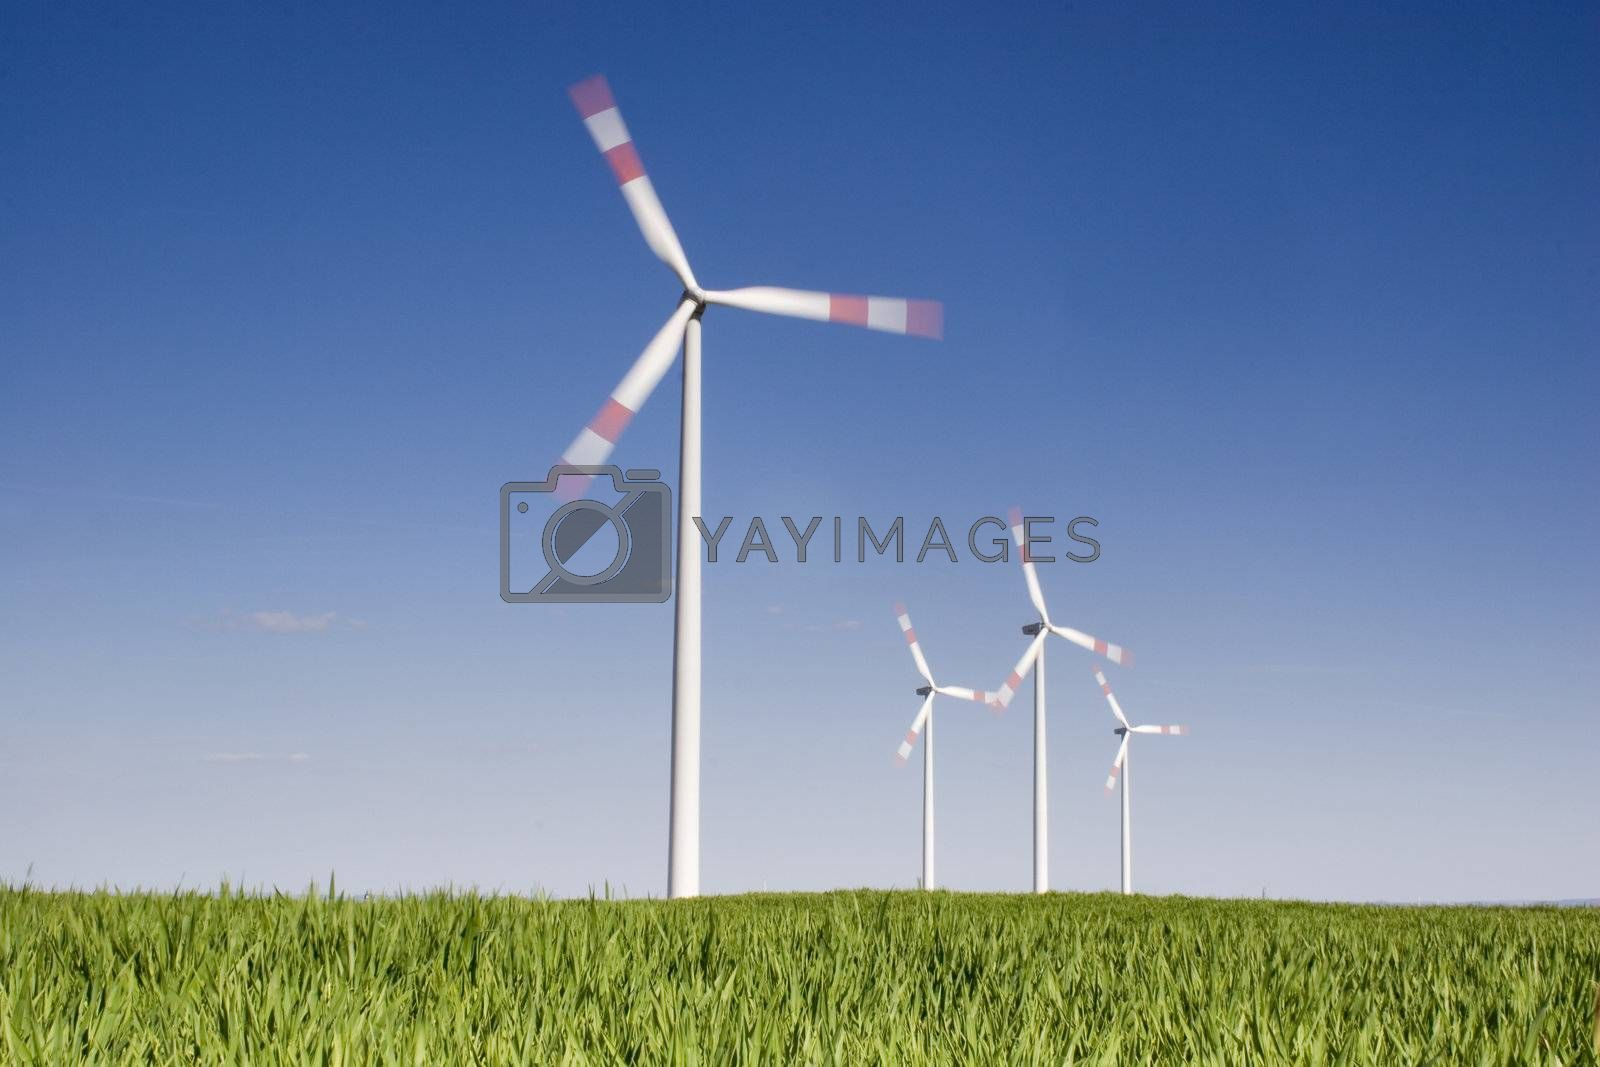 Rotating wind-turbines with green grass in the foreground against blue sky. Motion blurred propellers.